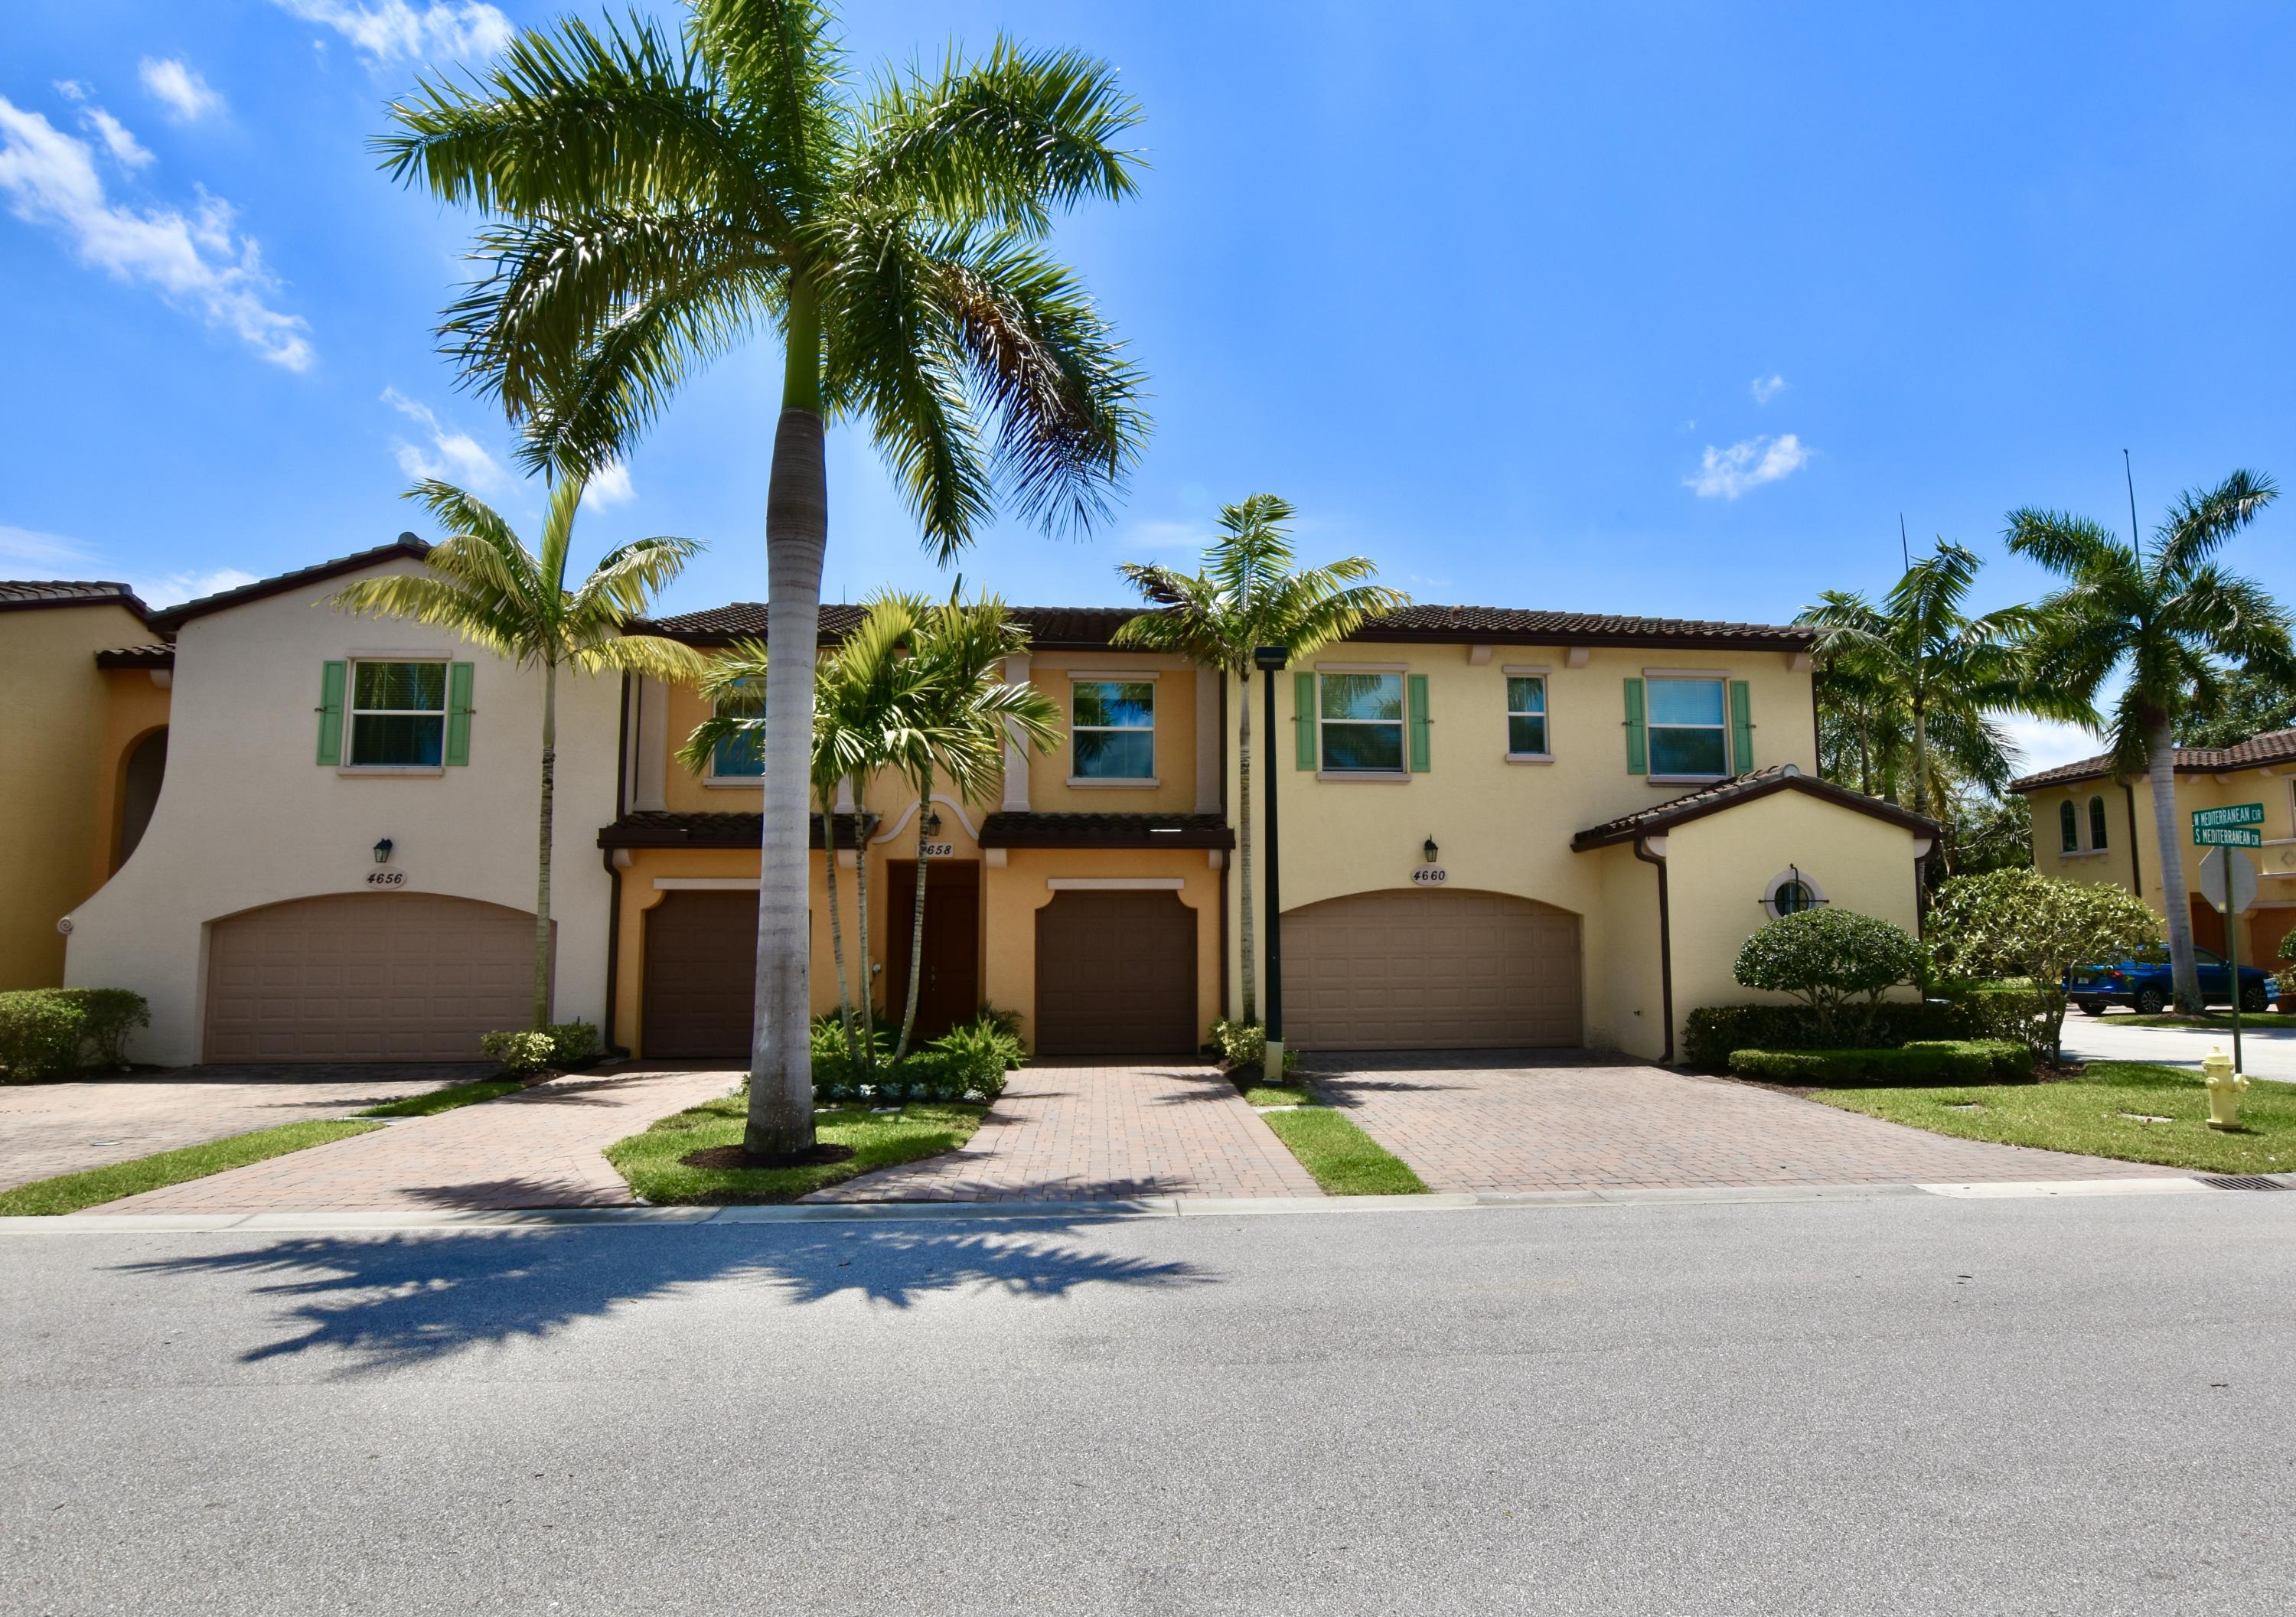 Home for sale in TREVI at the Gardens Palm Beach Gardens Florida